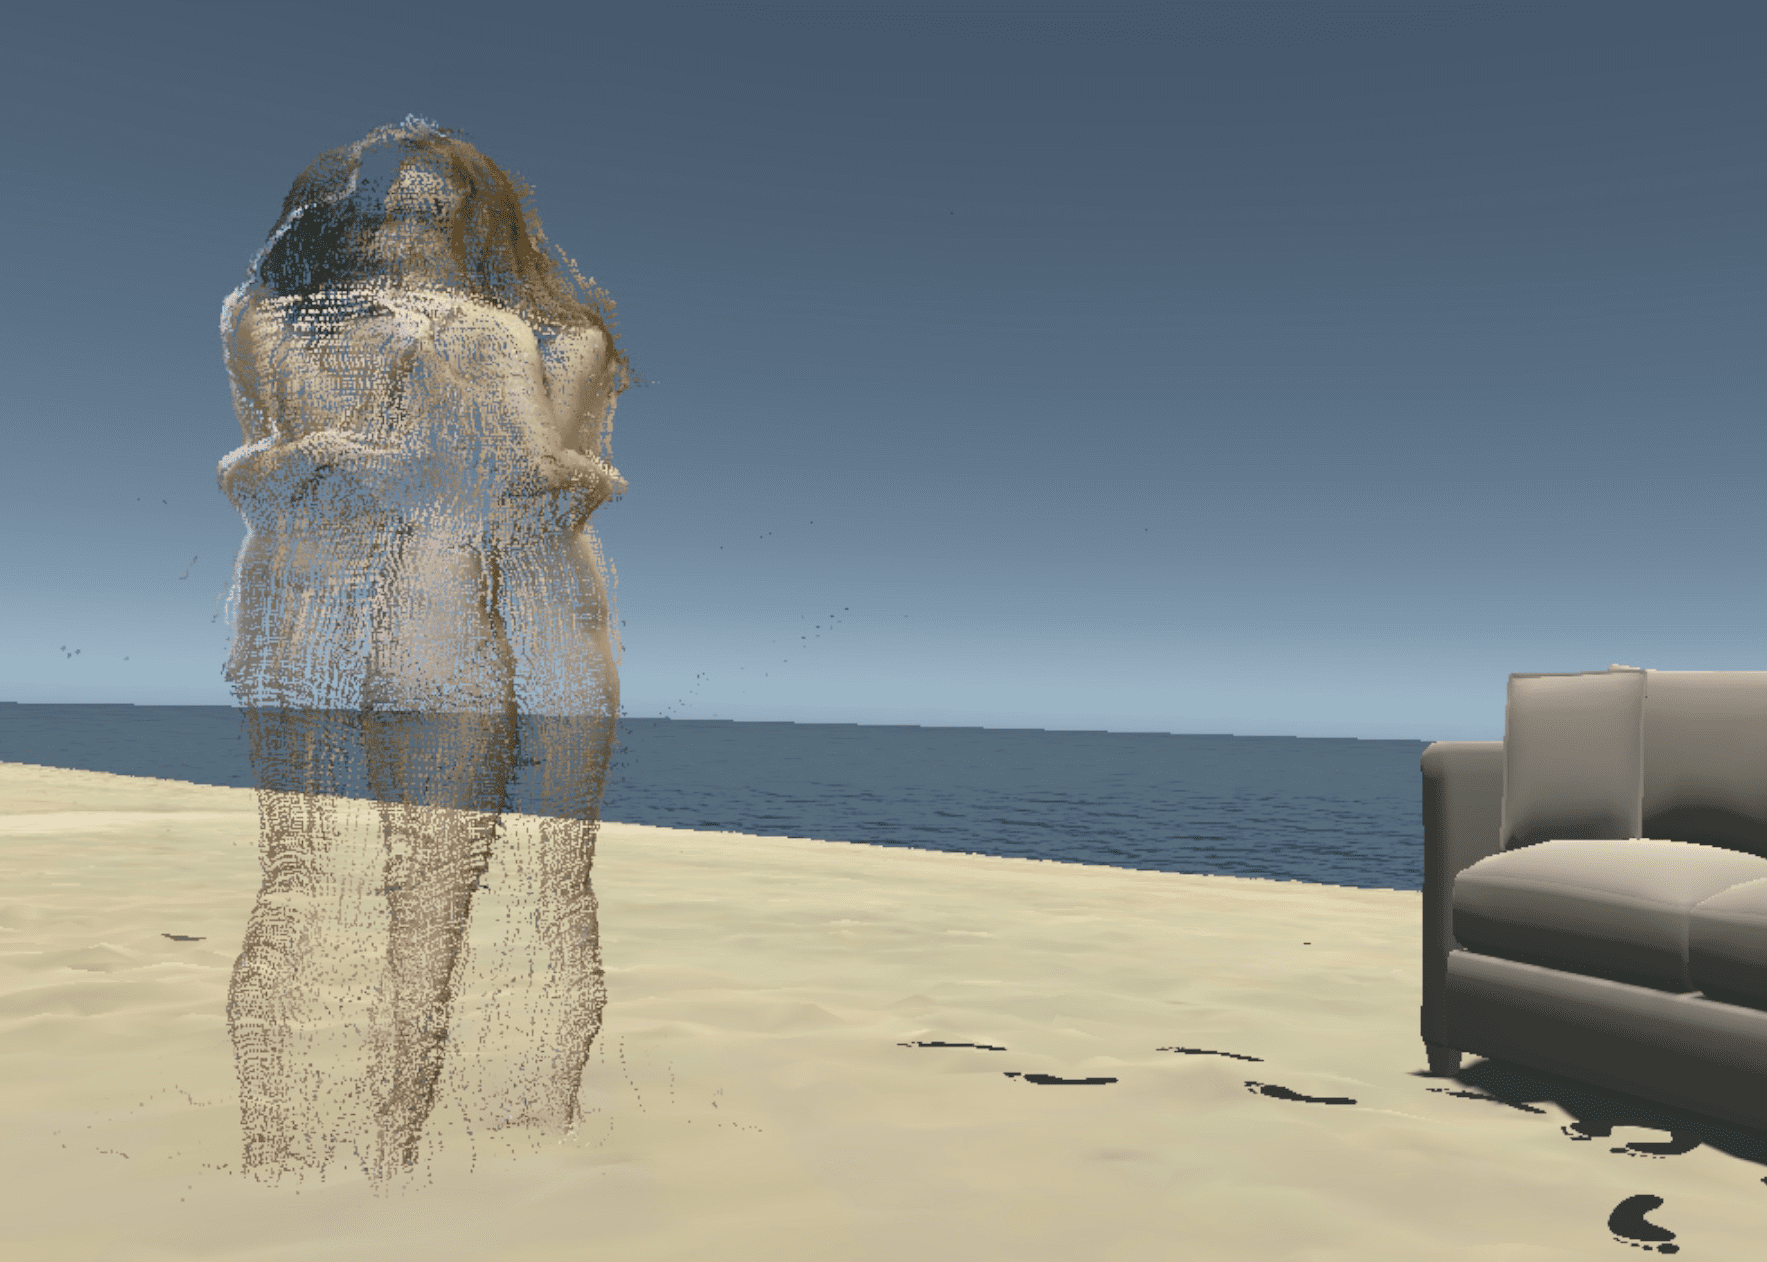 A beach scene, with sand in the foreground and a nude couple embracing, stood close to a sofa.